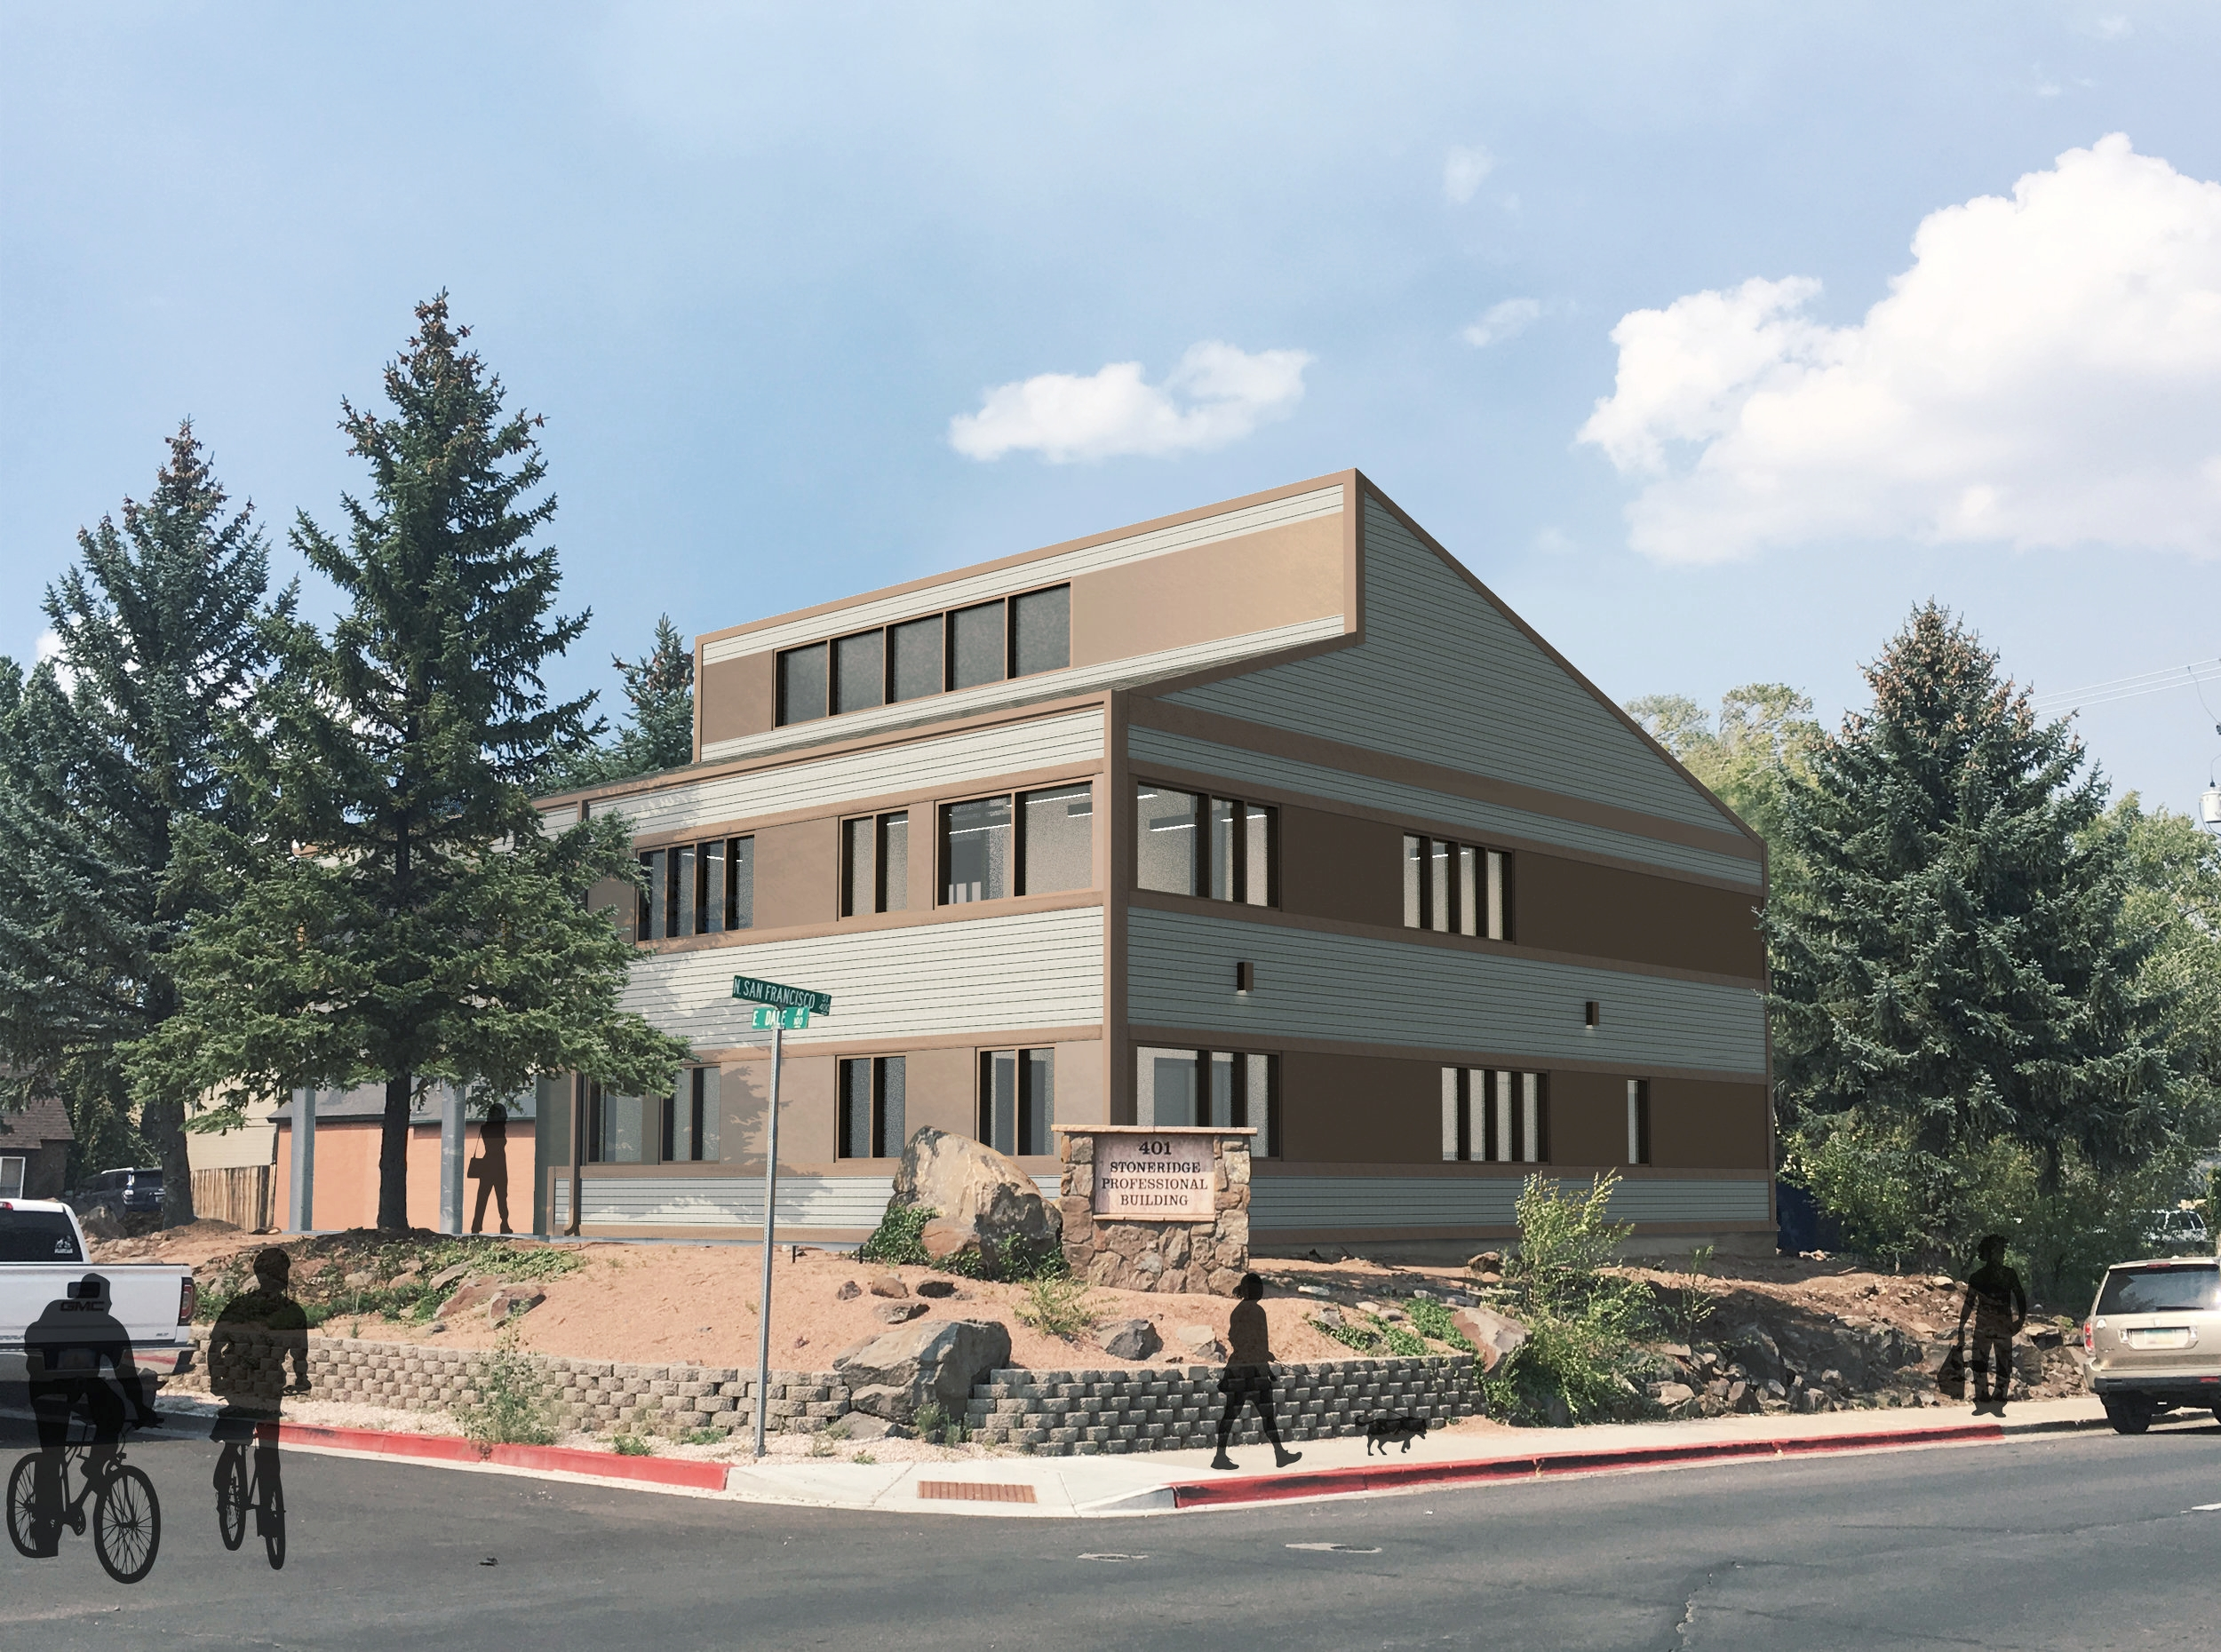 Rendering of the remodeled building as viewed from the south-east. Rendering by Erin O'Loughlin, Heise Design Studio.